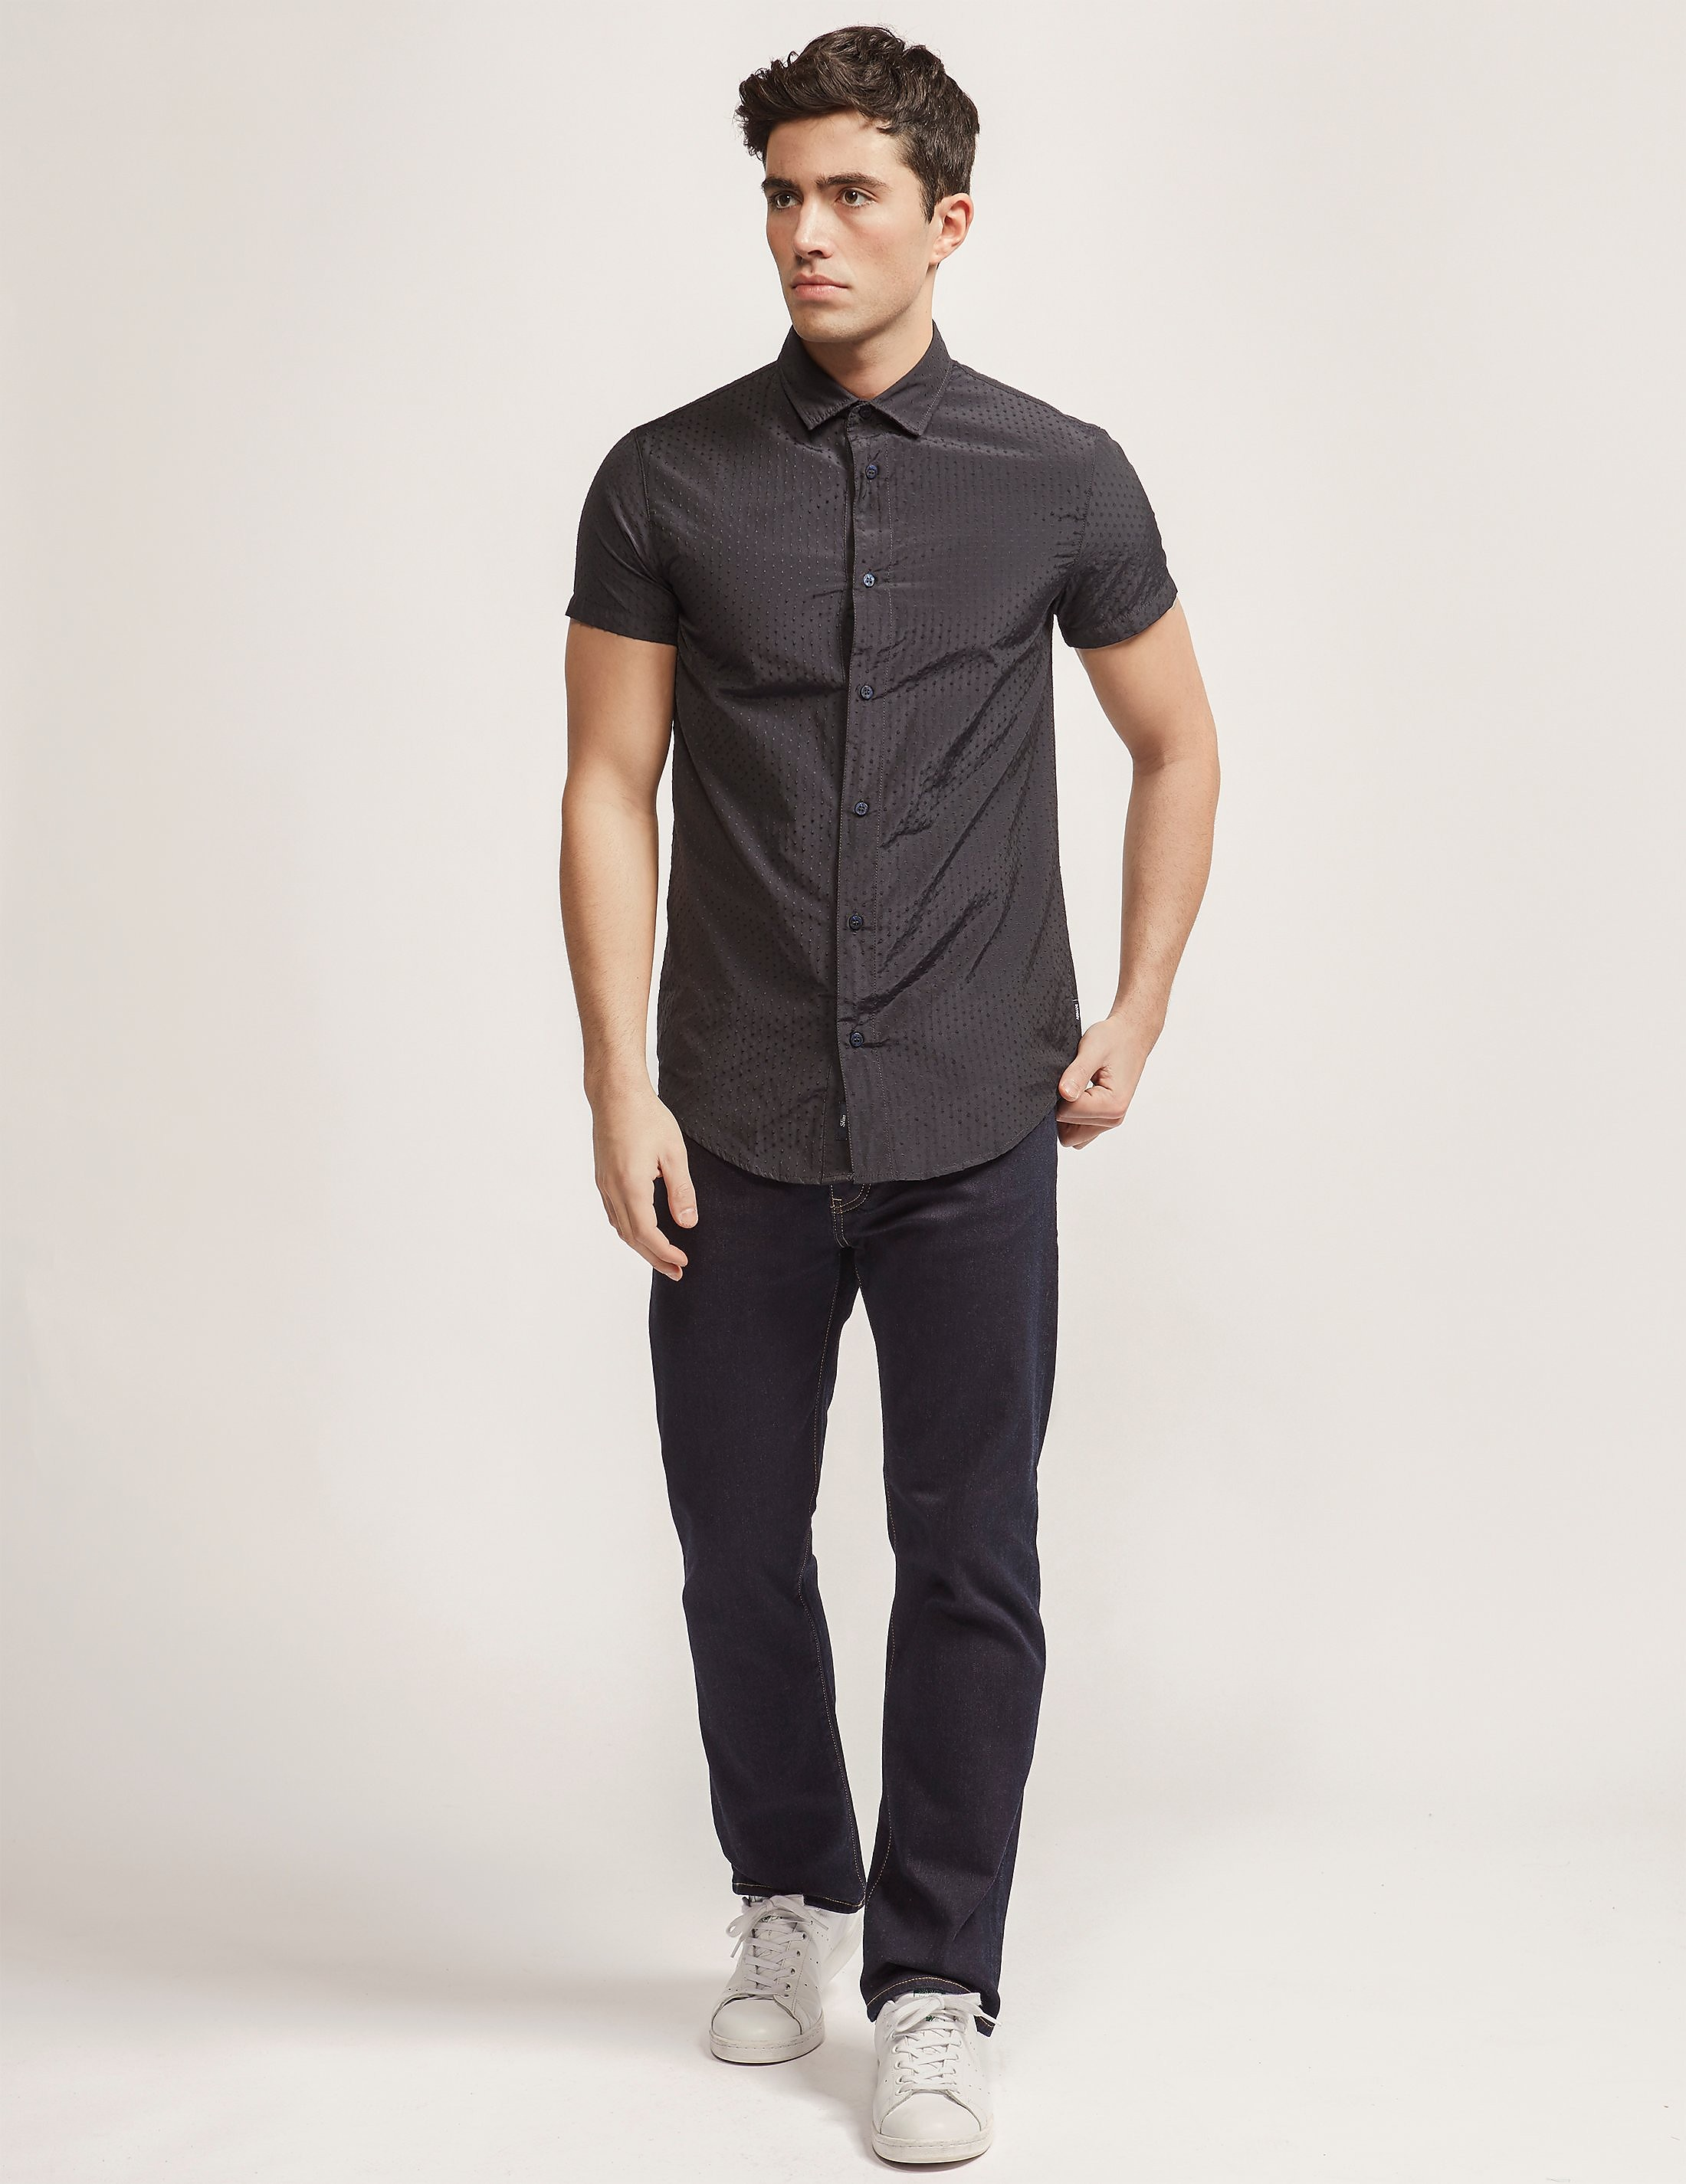 Armani Jeans Polka Dot Short Sleeve Shirt